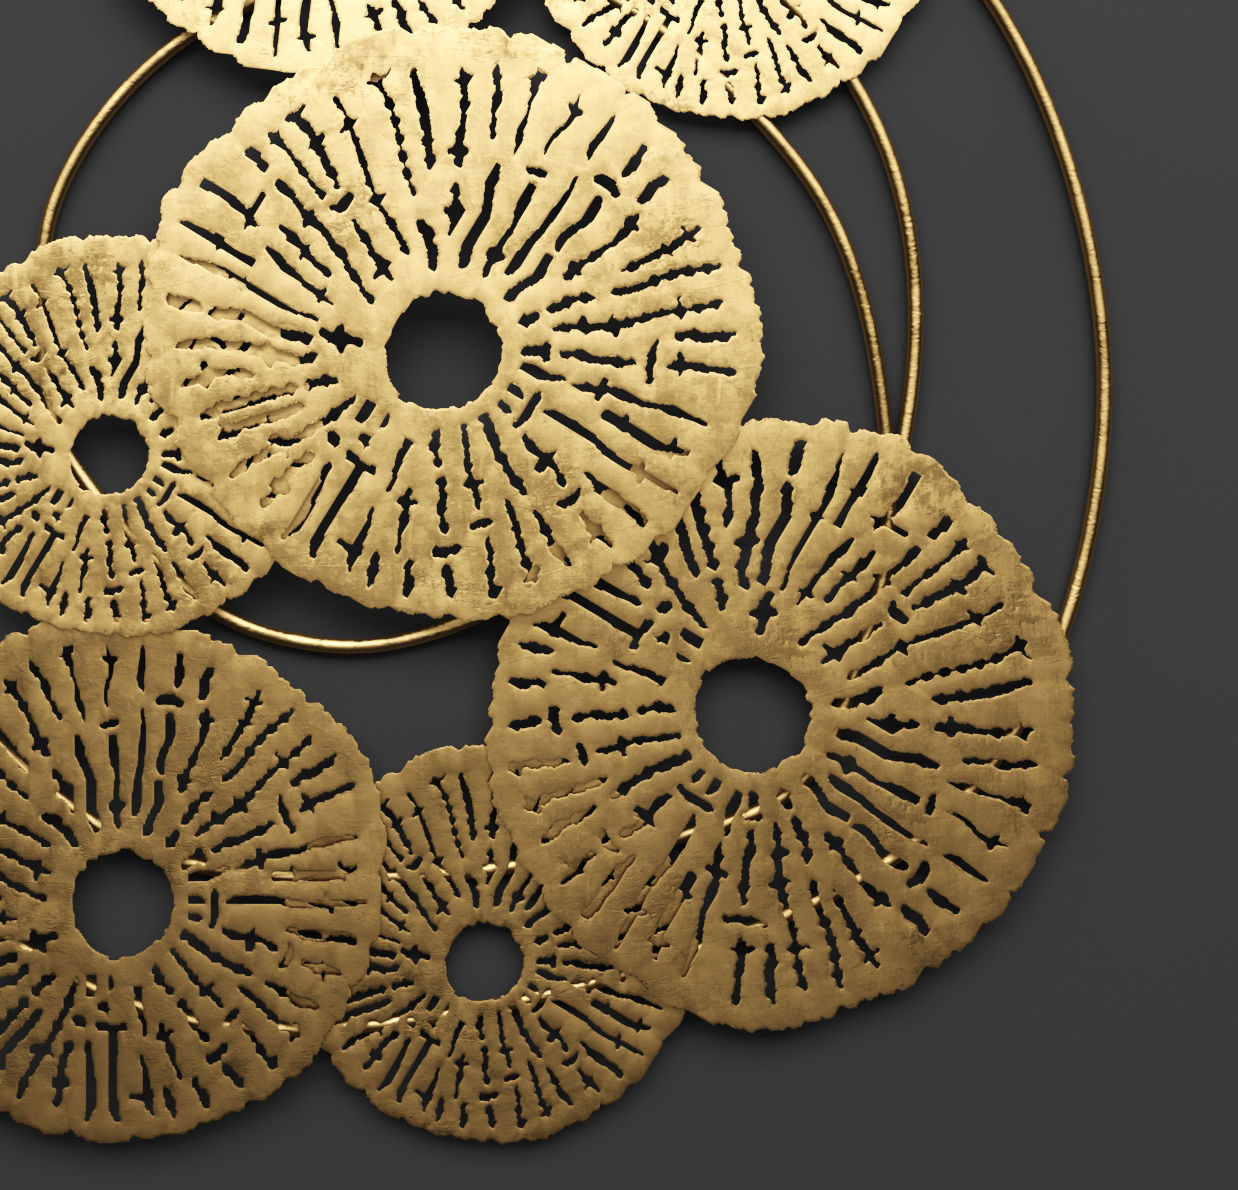 Art Scroll And Compass Mirror Silver Decor Metal Gold Pertaining To Round Compass Wall Decor (View 15 of 30)